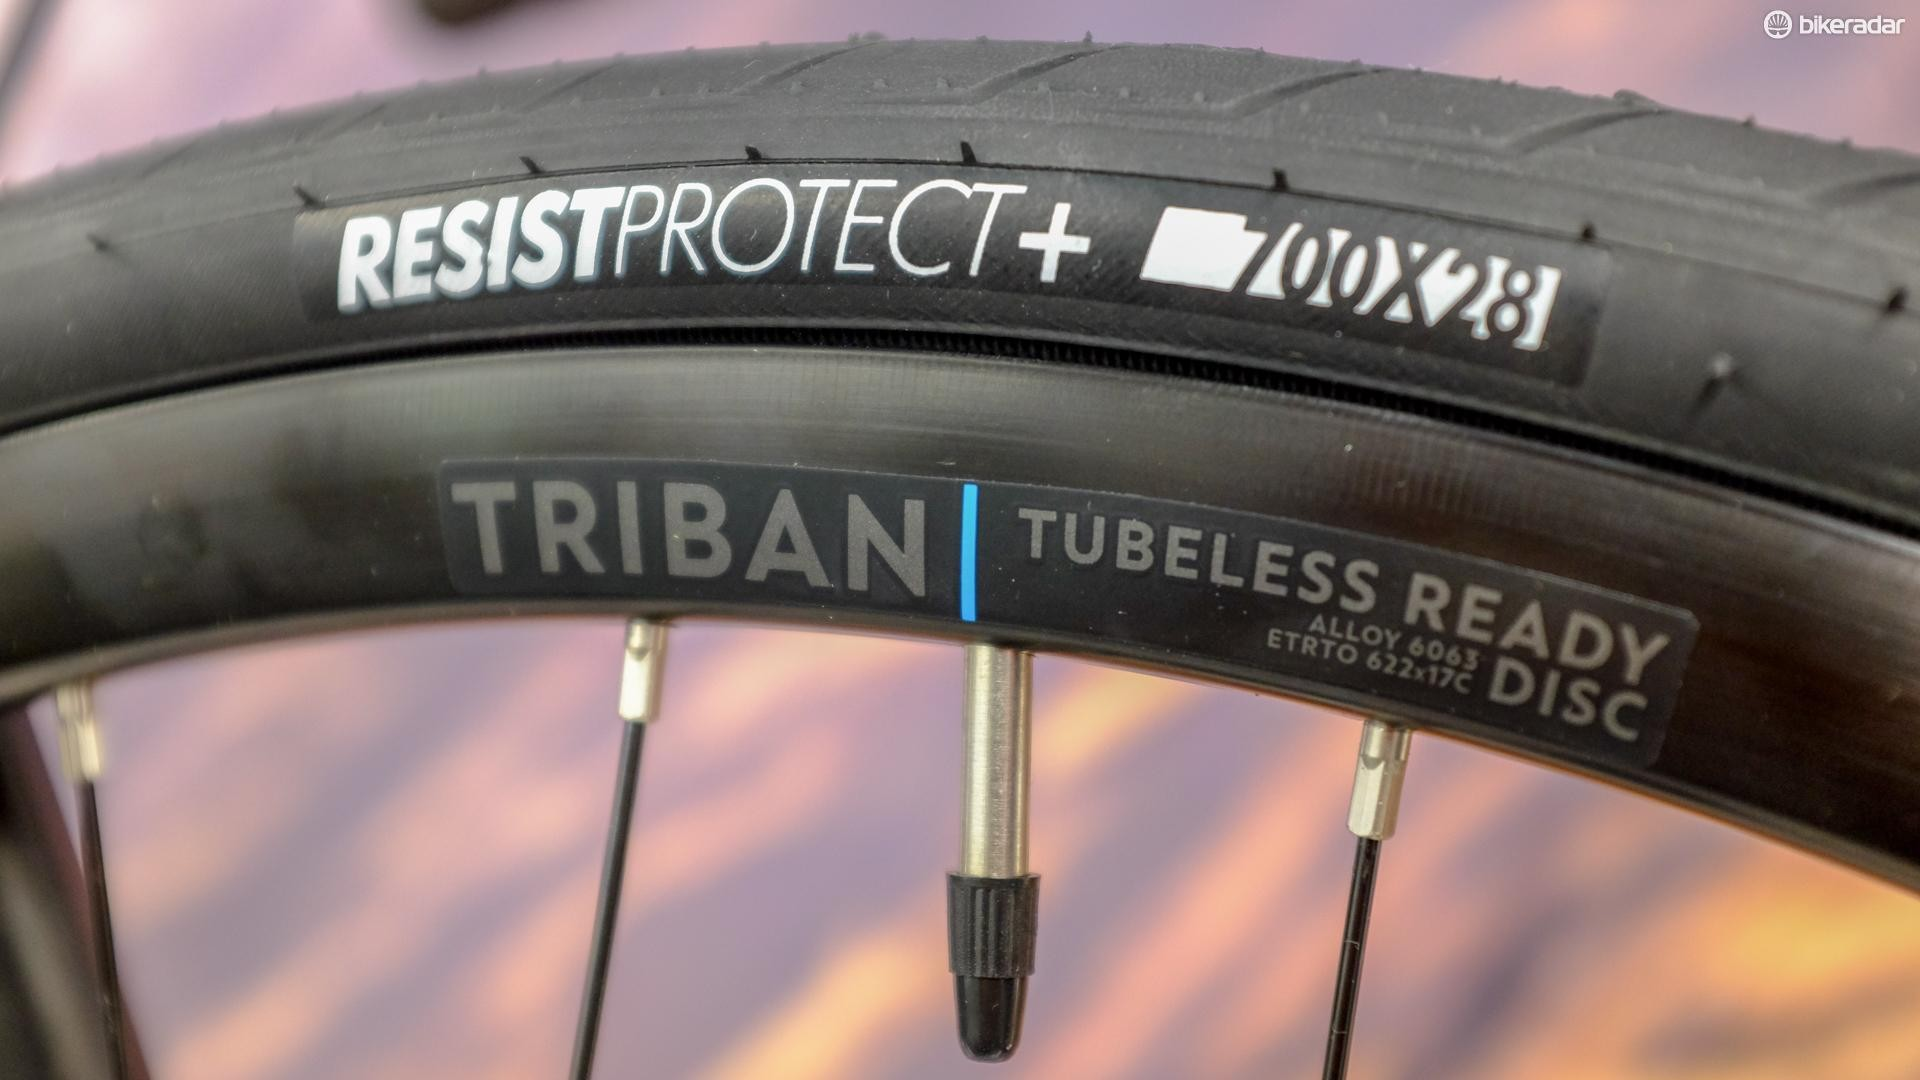 The new Tribans ship with tubeless-ready wheels as standard